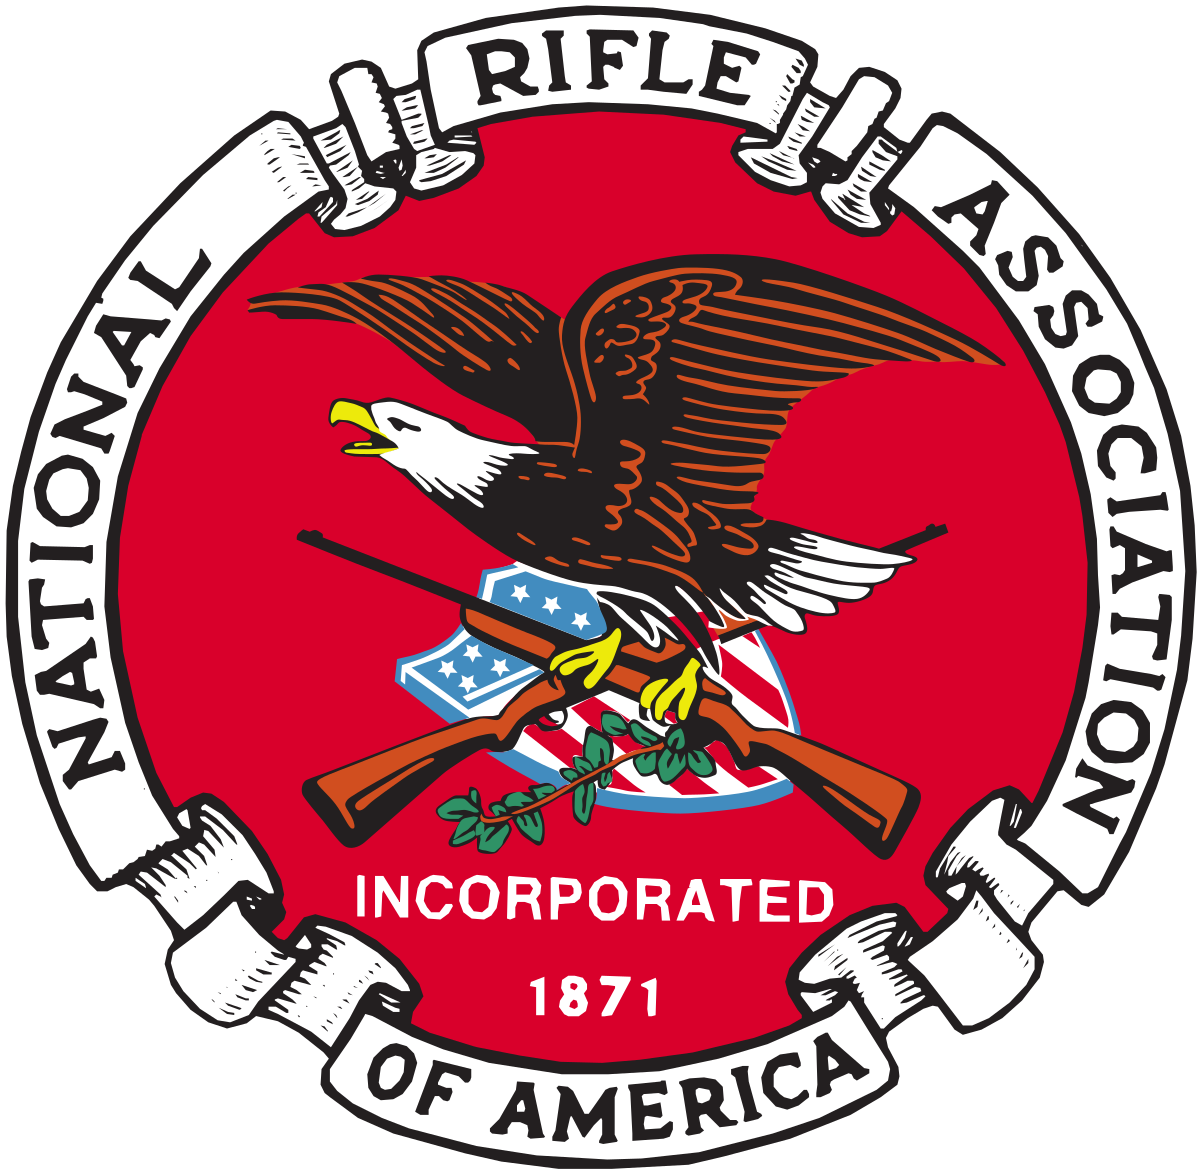 National rifle association wikipedia. Clipart gun school shooting